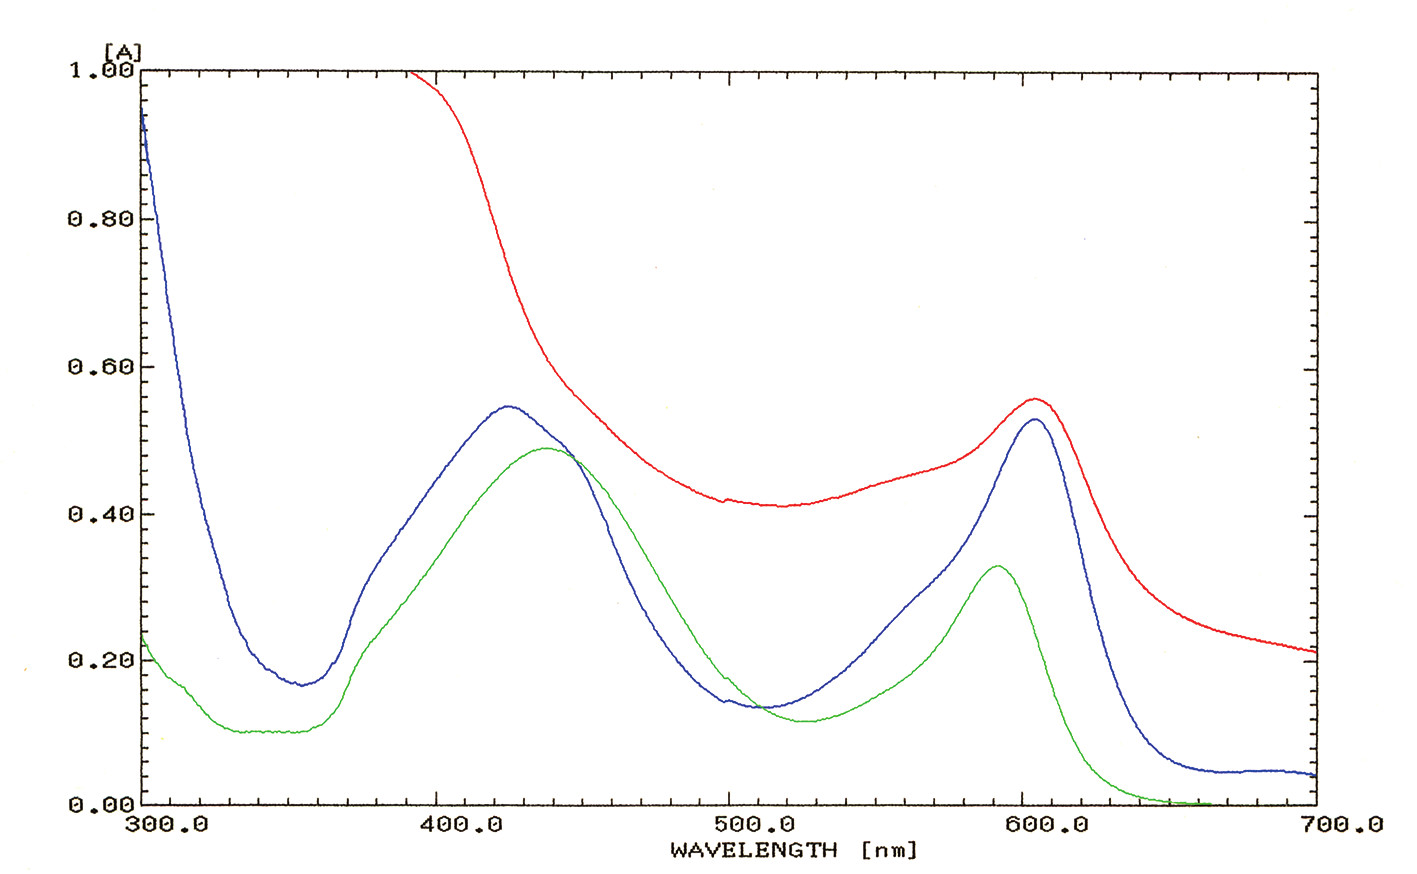 Figure 3. Absorption spectrum of each sample. Both the stomach contents (red line) and Sanpoll<sup>®</sup> (blue line; positive control) show a peak at 605nm. (green: distilled water, blue: Sanpolll<sup>®l</sup>, red: stomach contents).